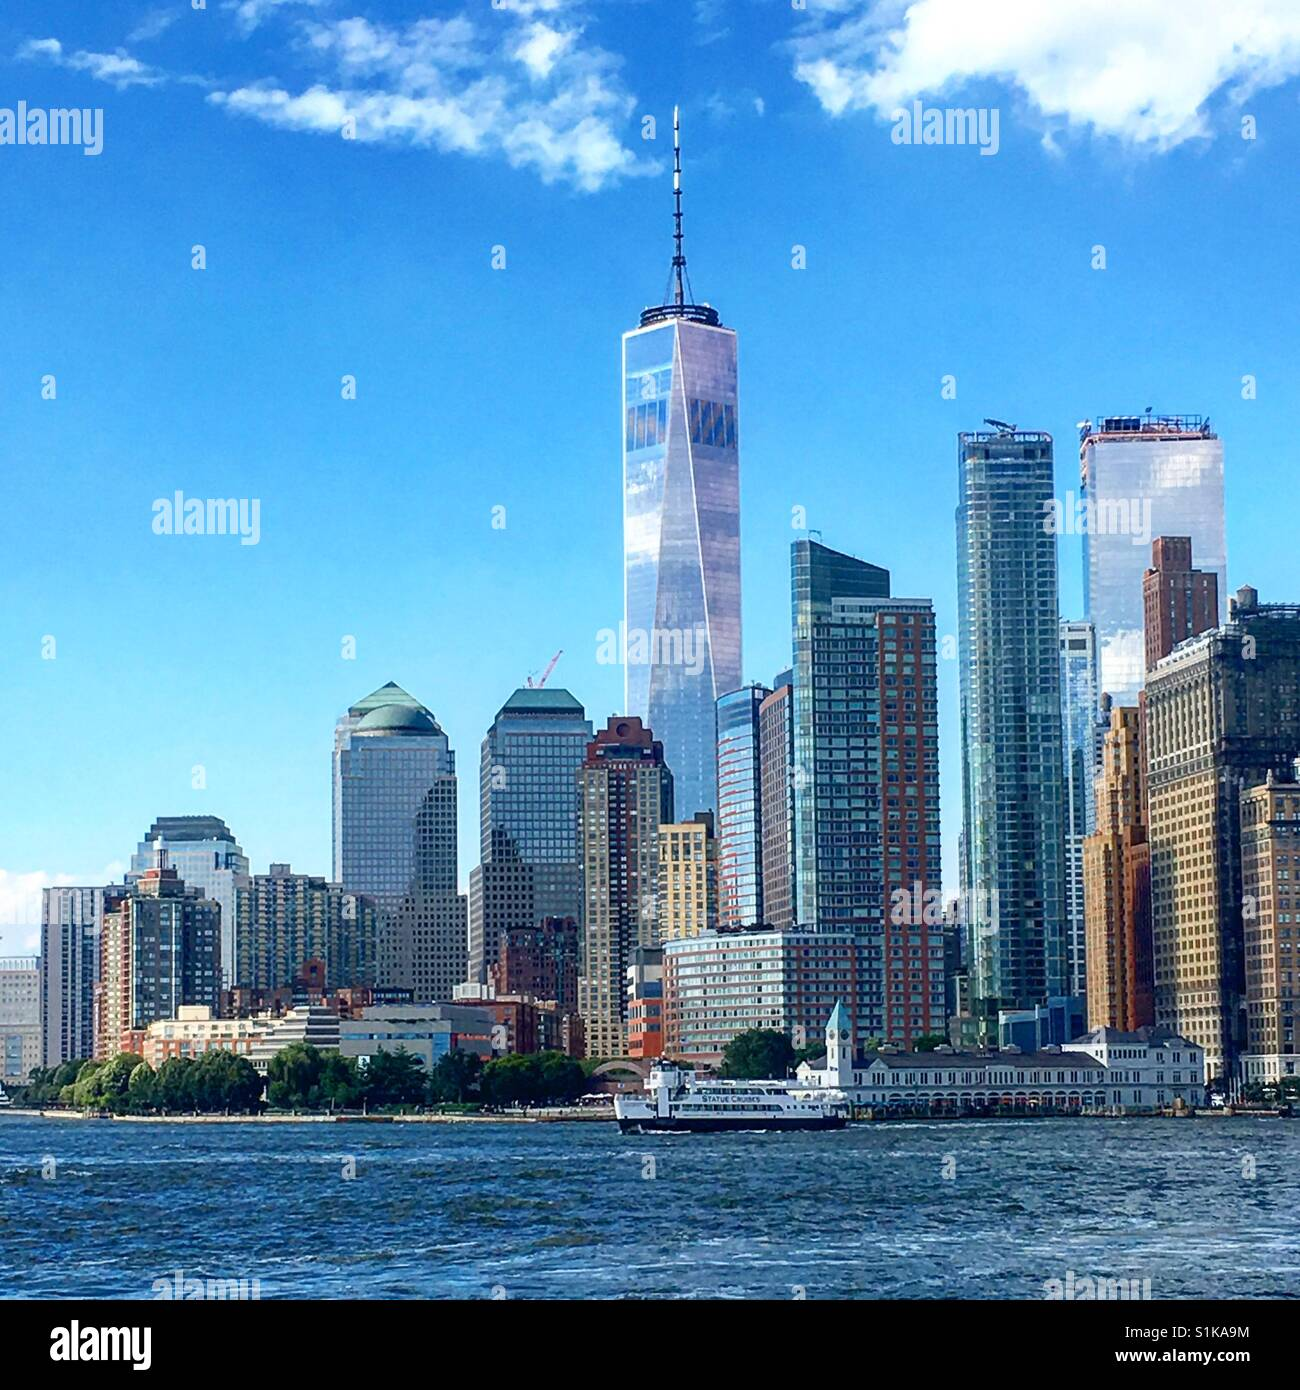 New York skyline including One World Trade Center and ferry - Stock Image